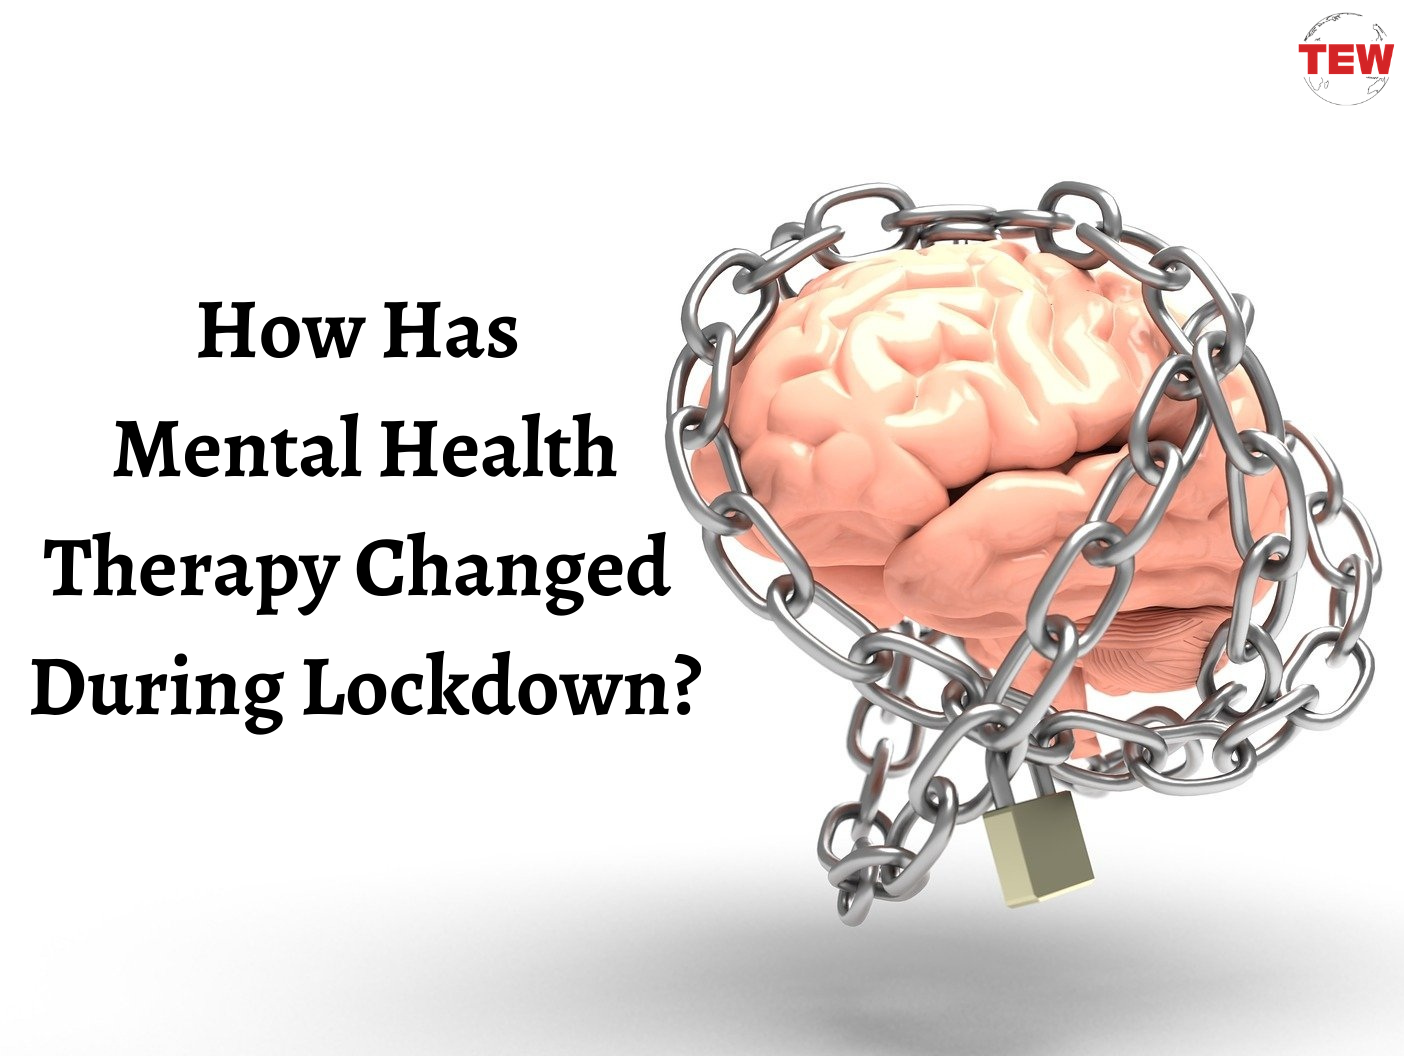 How Has Mental Health Therapy Changed During Lock-down?